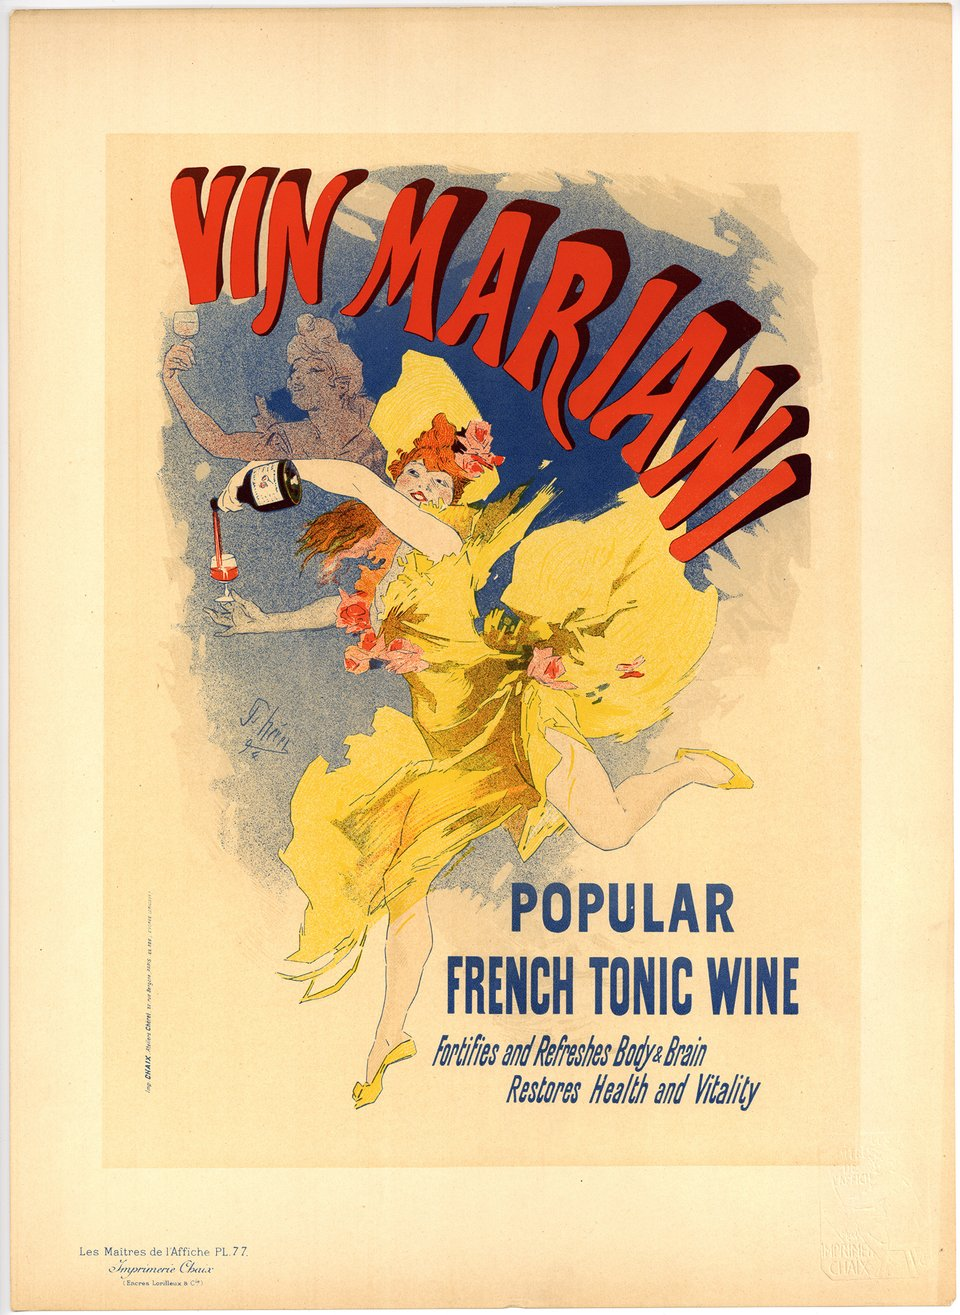 PL. 77 Vin Mariani, Popular French Tonic Wine – Vintage poster – Jules CHERET – 1897